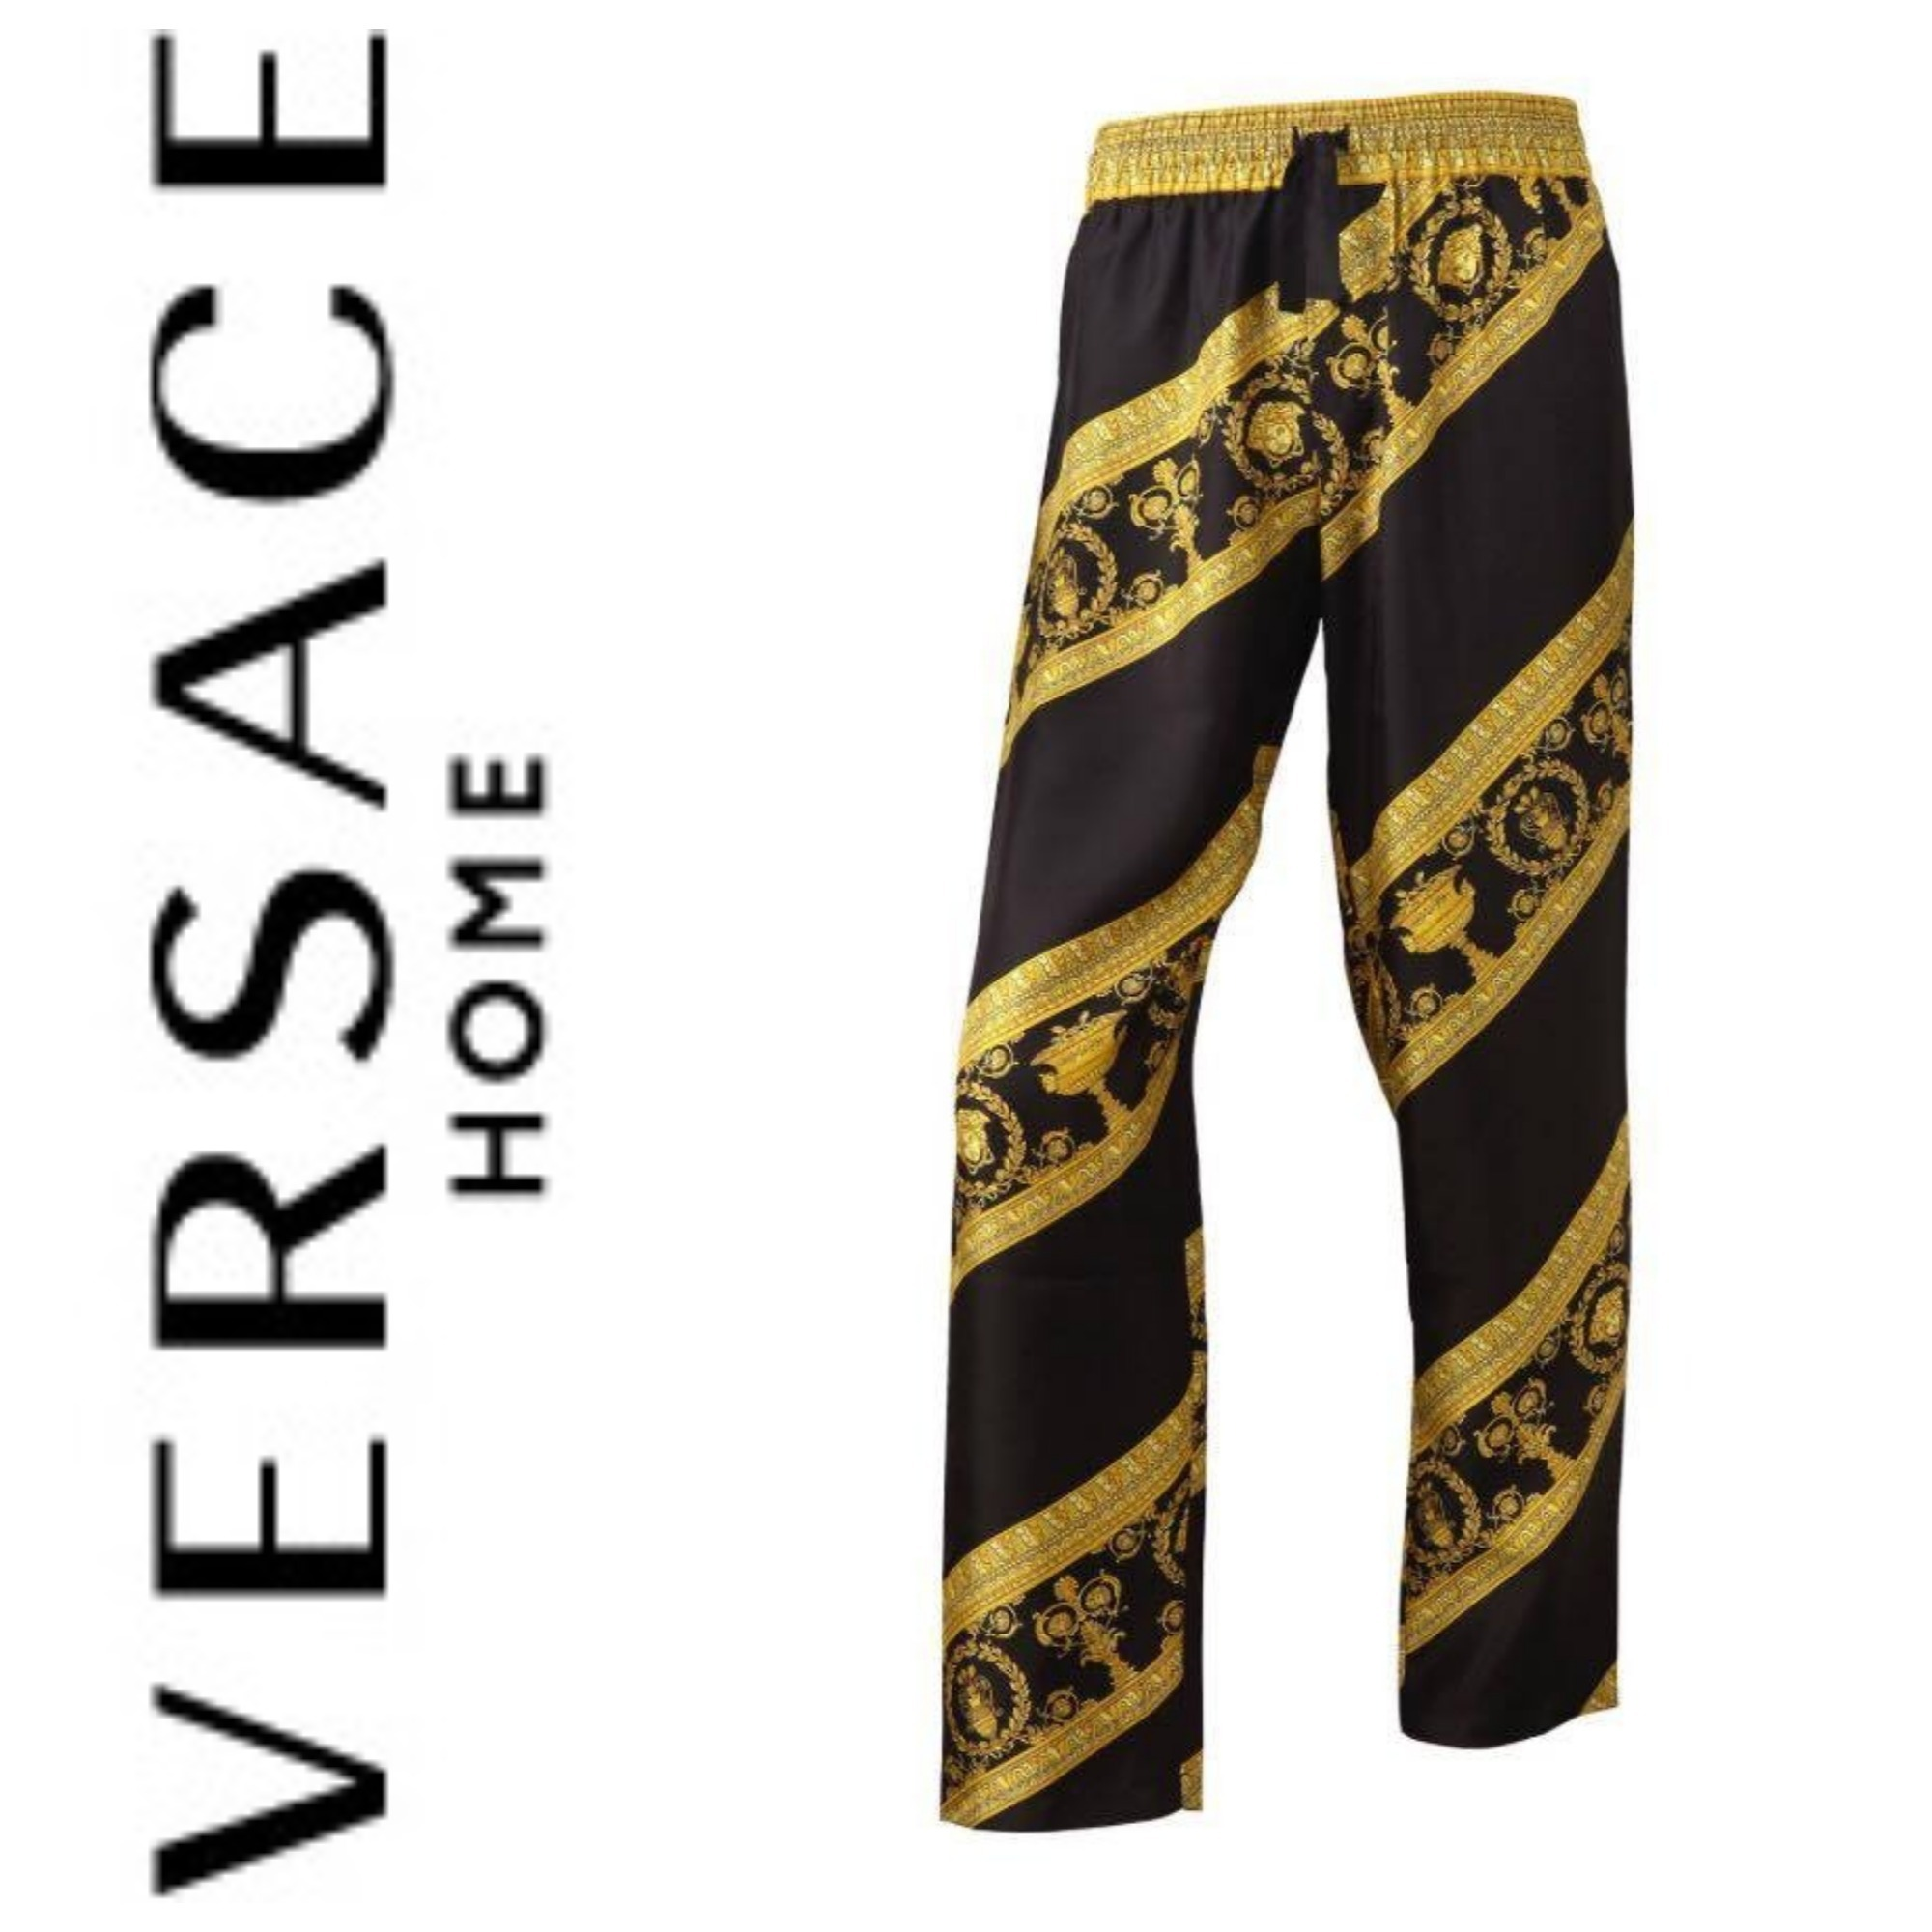 【VERSACE HOME】I ♡ BAROQUE シルク パジャマ パンツ